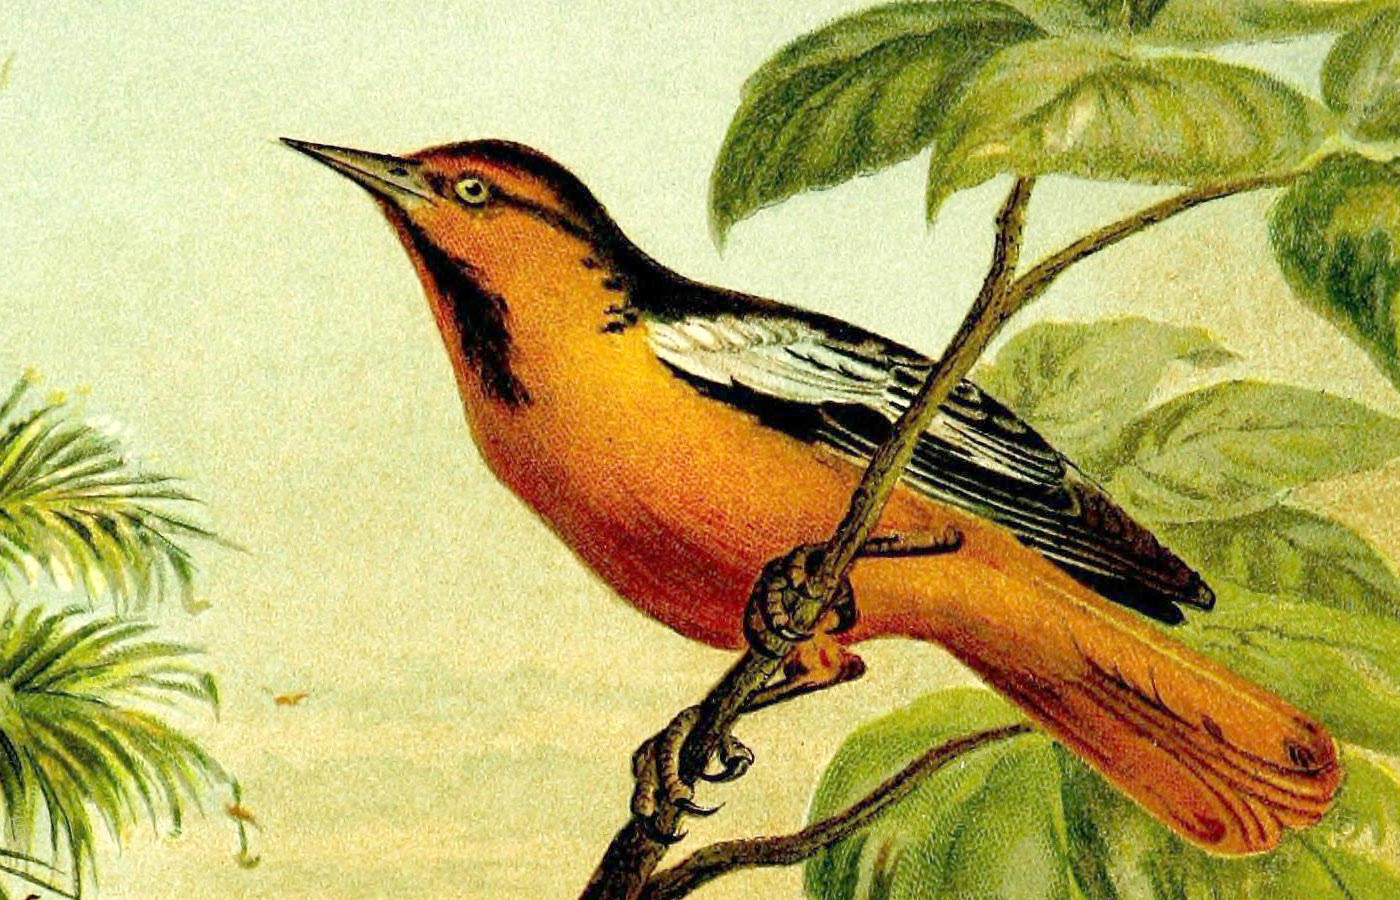 Oriole, both a bird and the name of O'Reilly's new Online Tutorials.